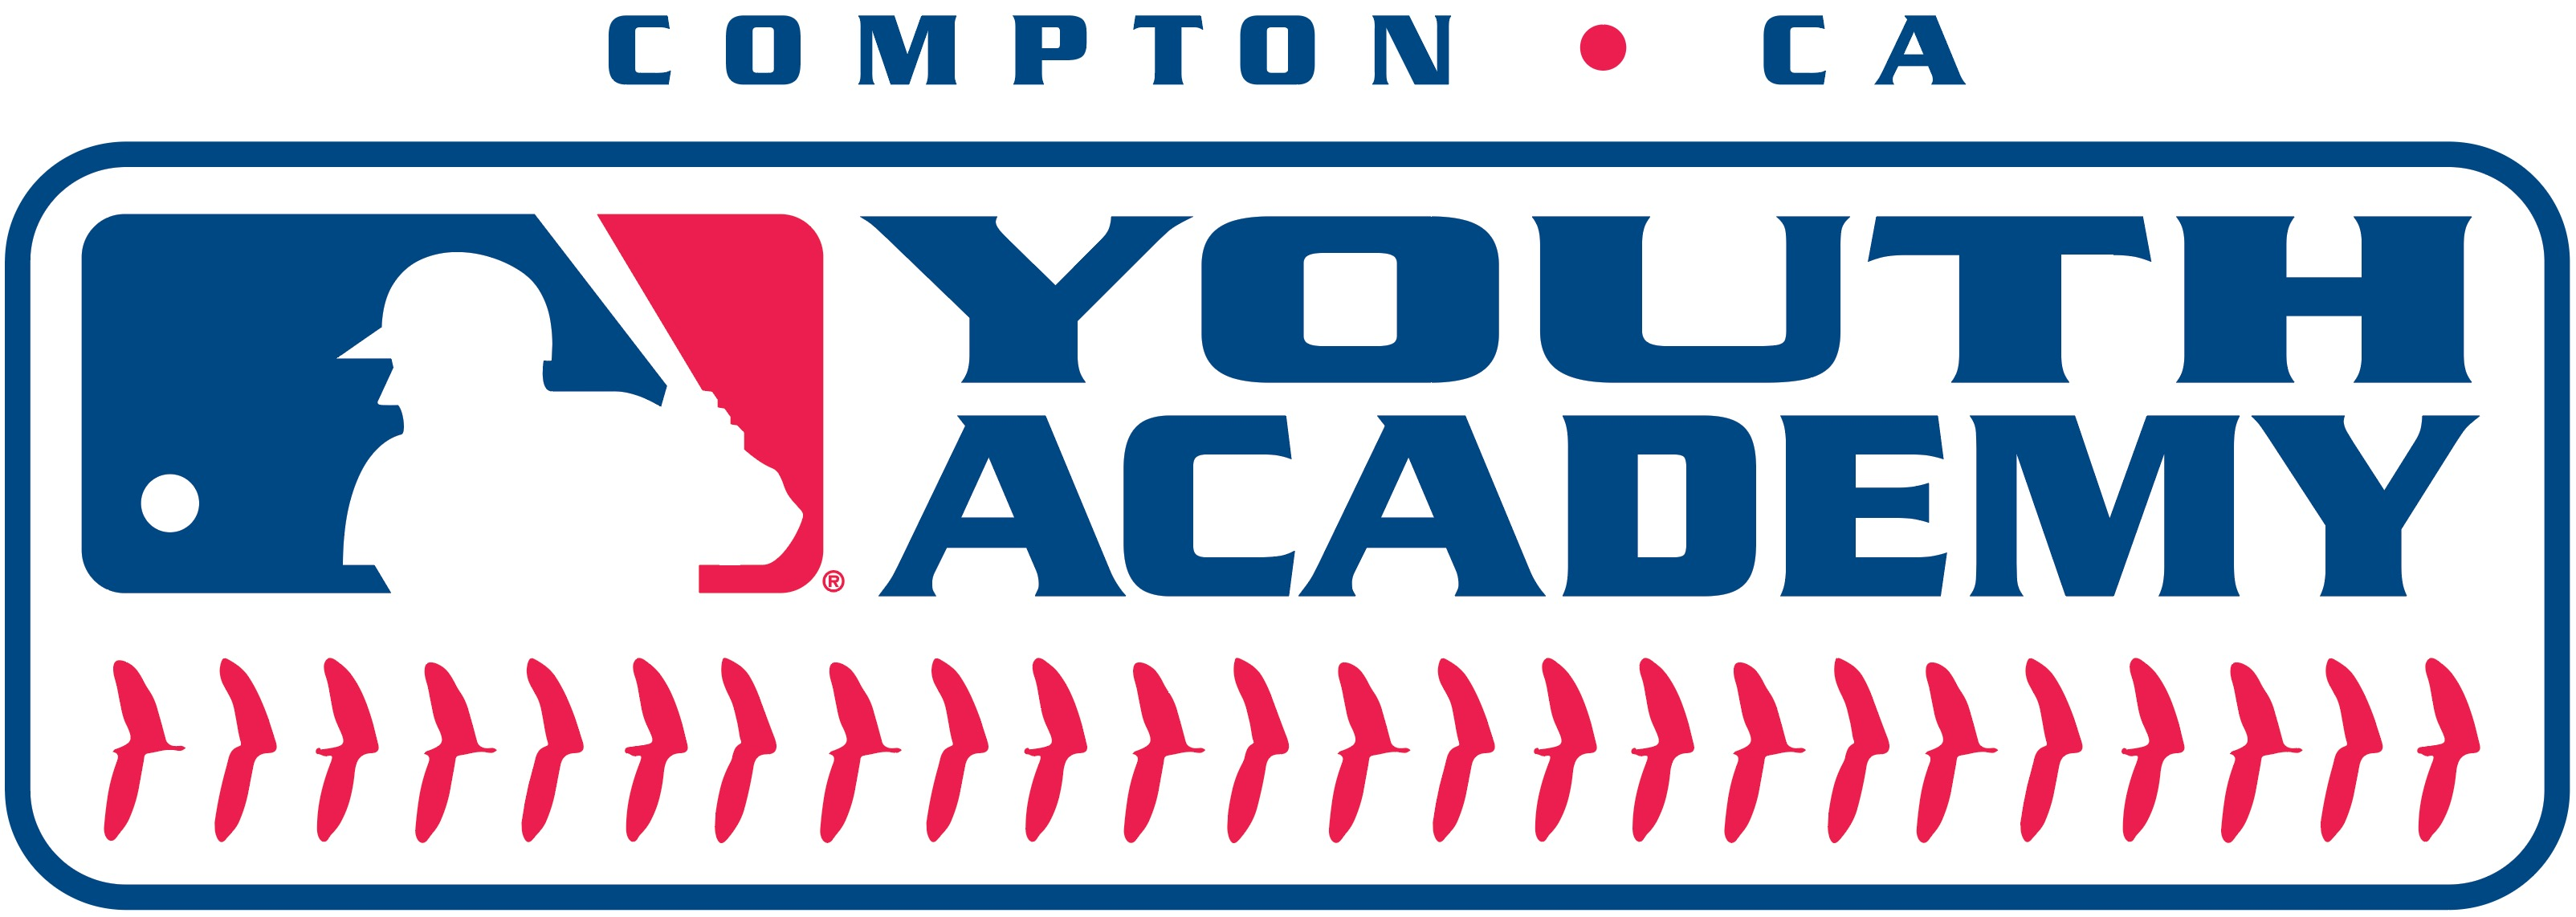 14U Team MLB Softball Pitching Tryouts